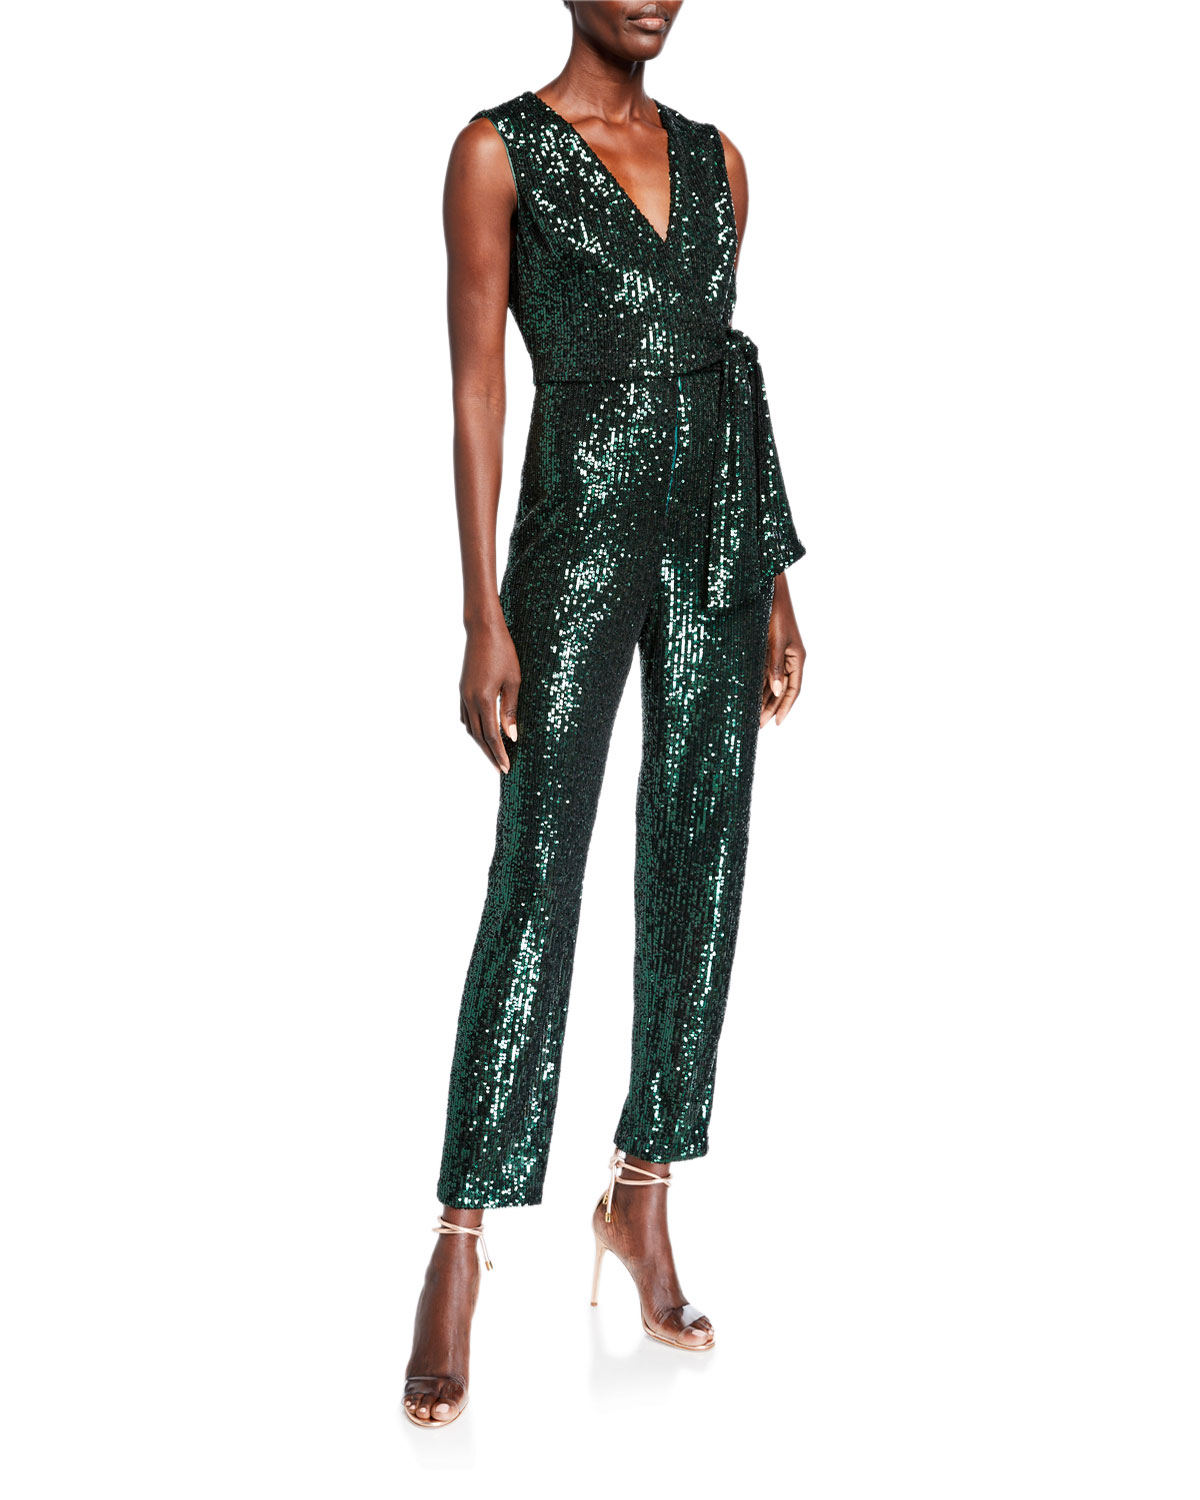 Milly Suits STRETCH MICRO SEQUINS V-NECK SLEEVELESS TIE JUMPSUIT